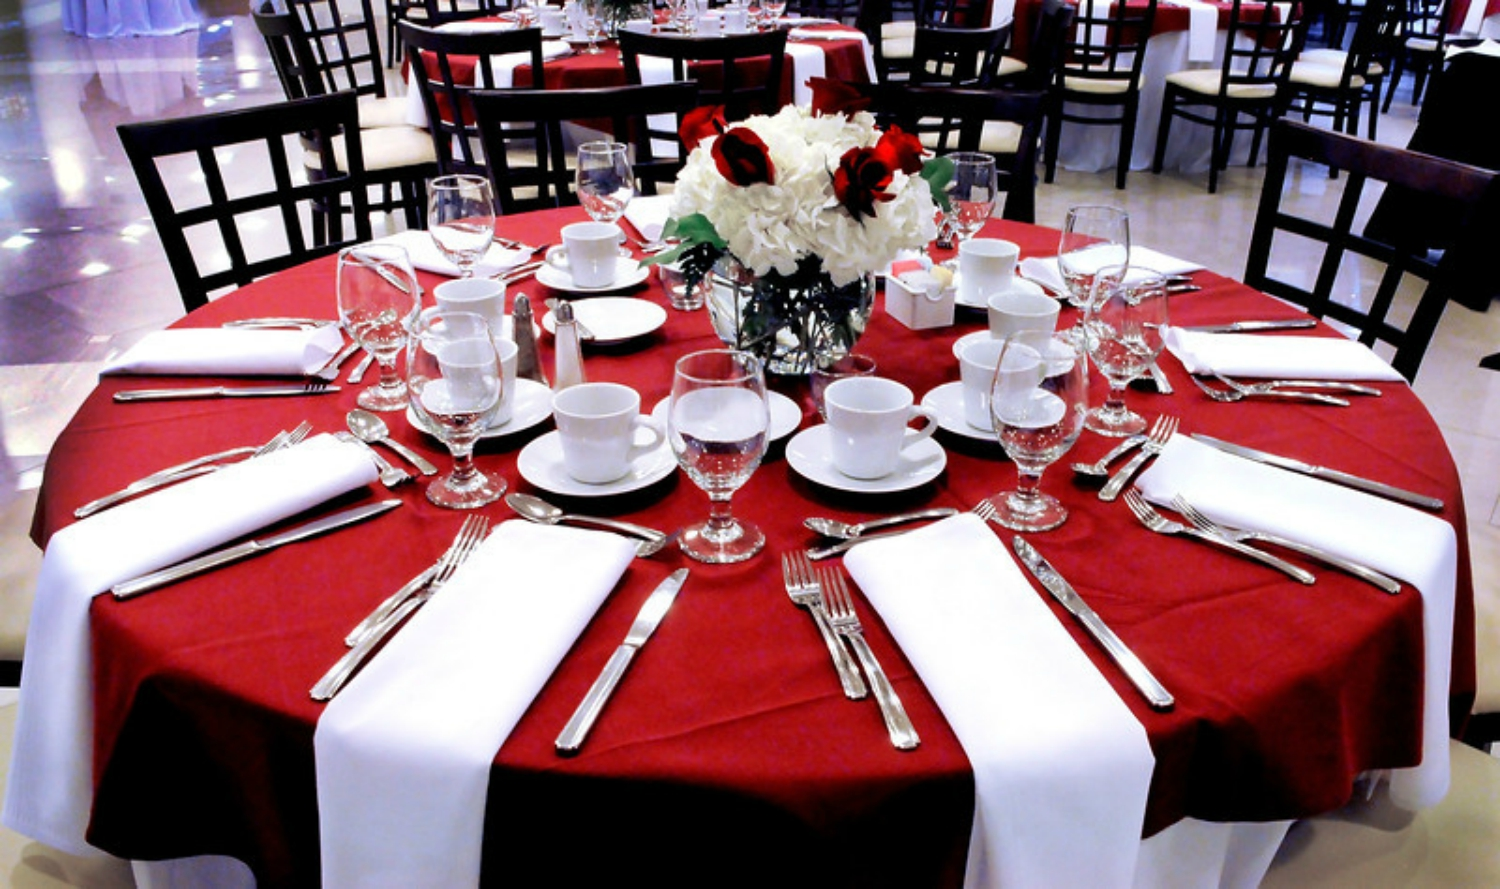 Room with round dining tables with red table cloths. White napkin placesettings and flower centerpieces.